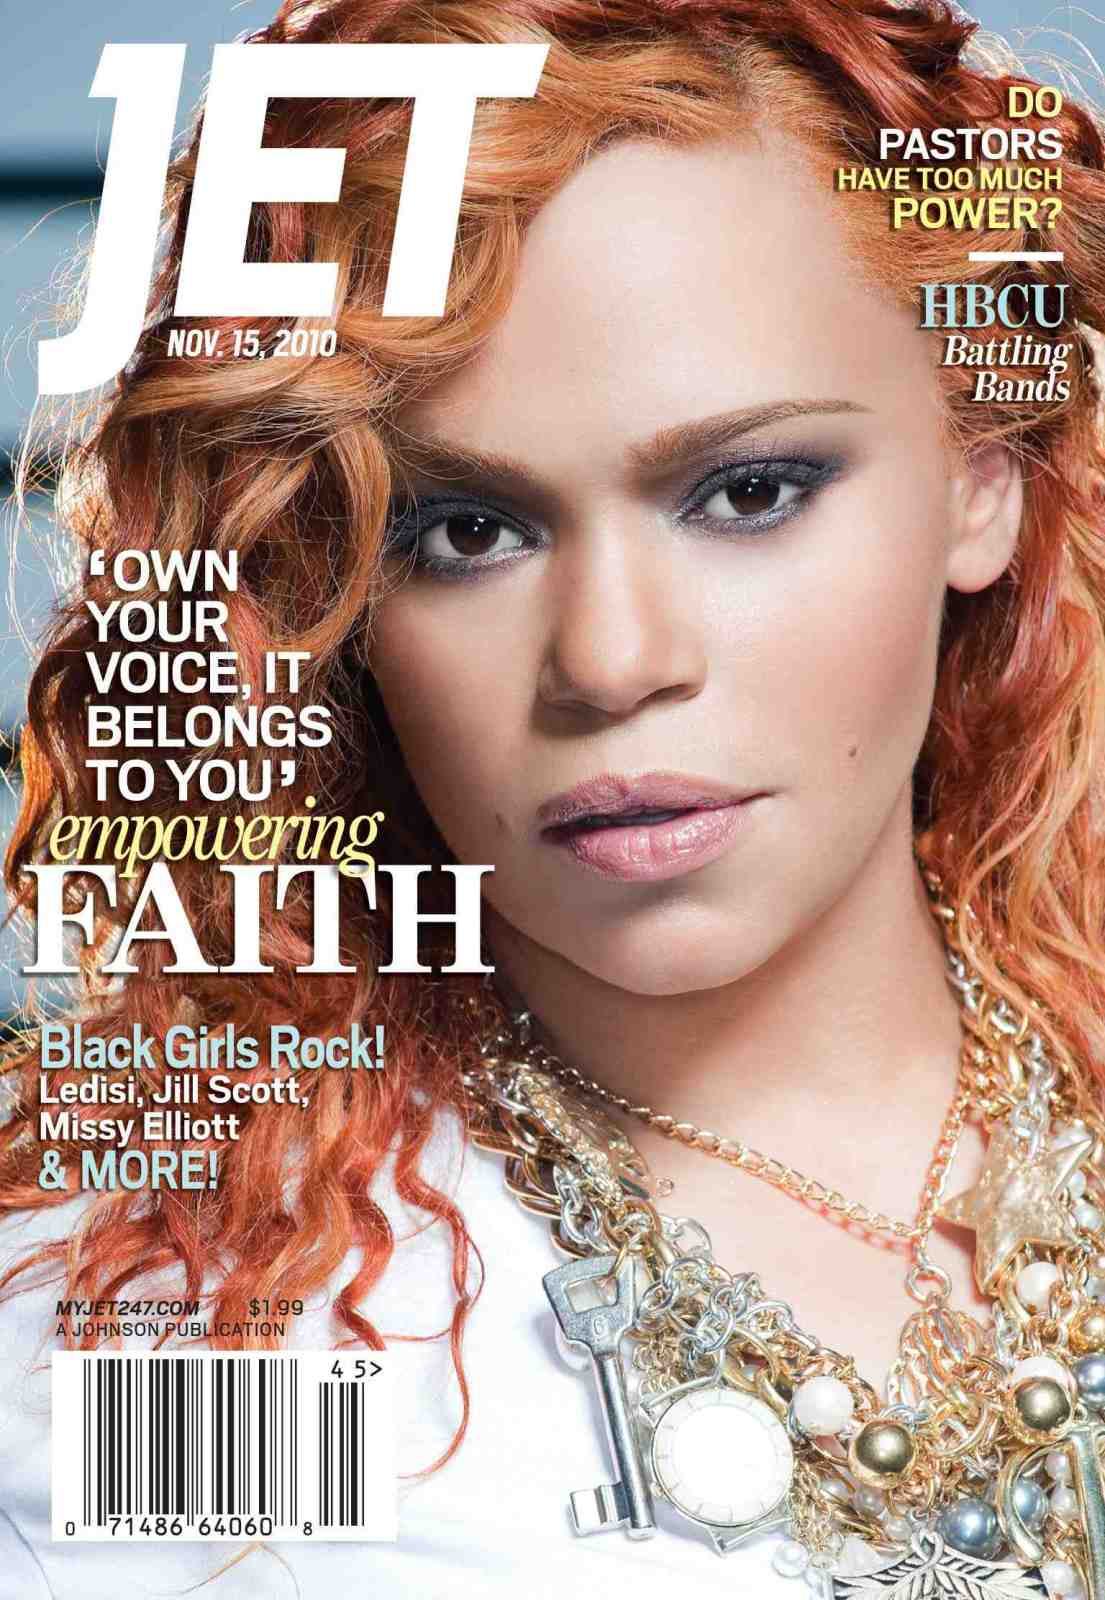 faith evans back to love